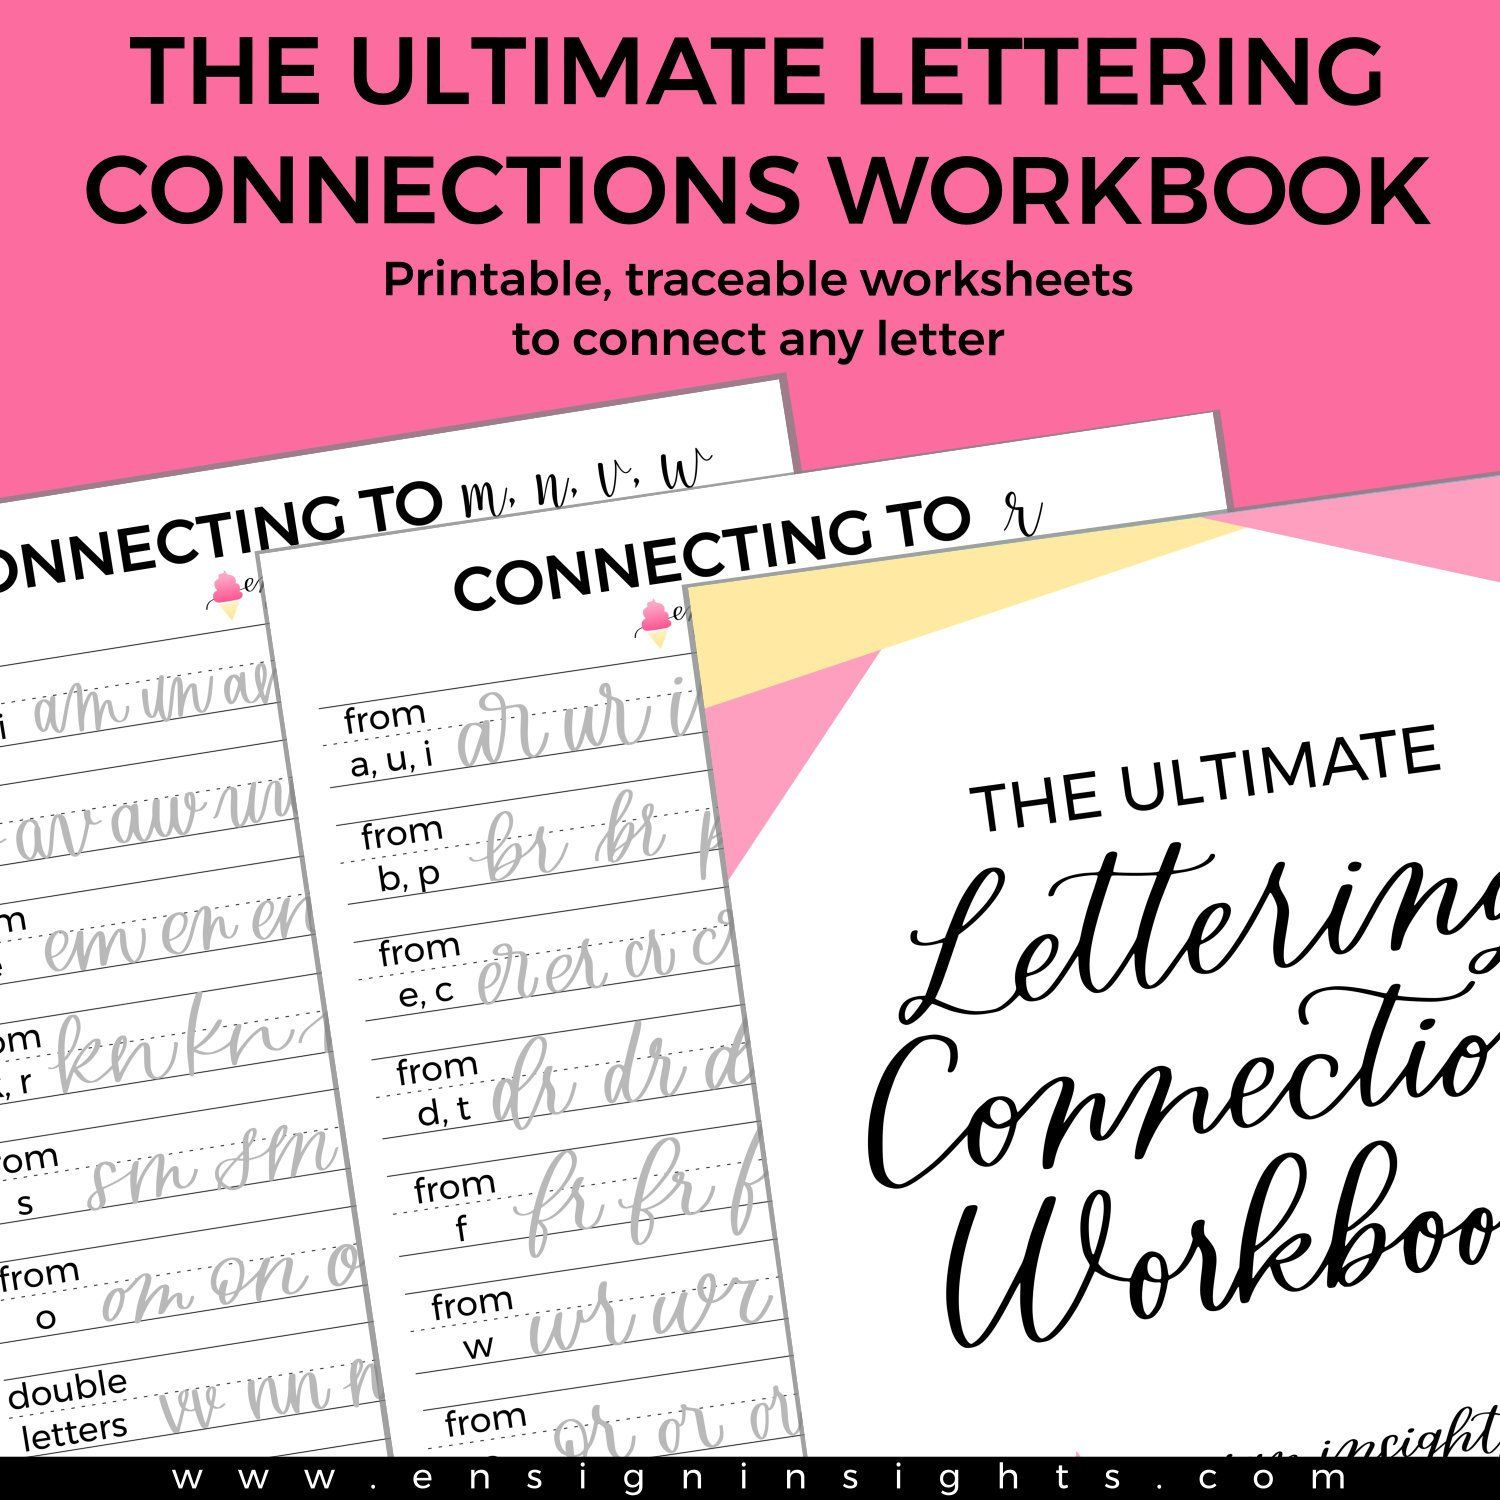 The Ultimate Lettering Connections Workbook Hand